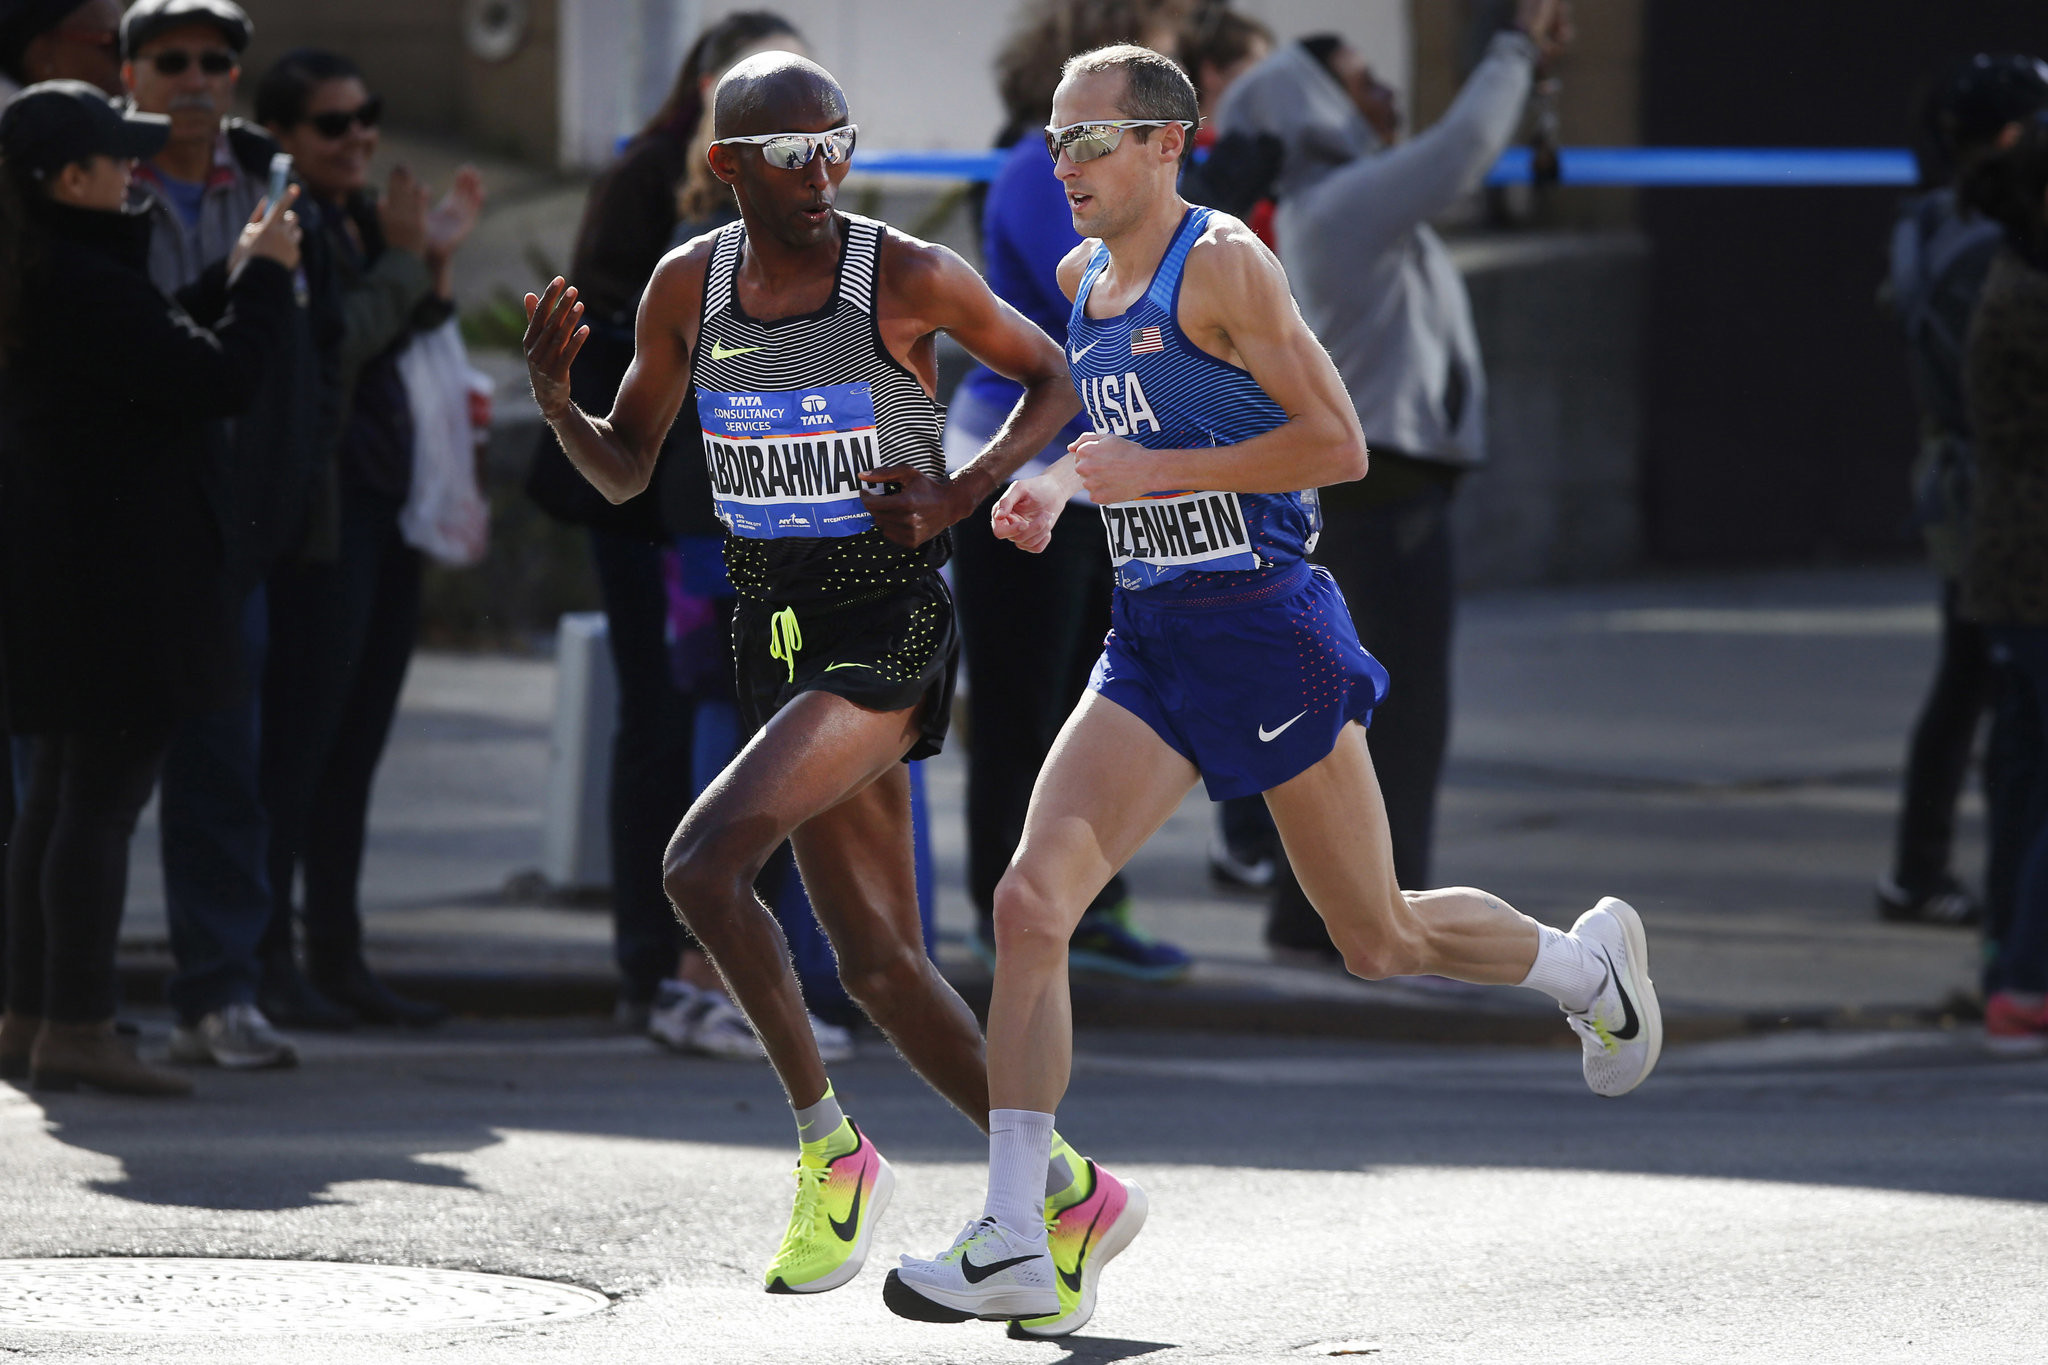 Dathan Ritzenhein rans 1:01:24 half marathon in New Orleans as he gets ready to run Boston in April